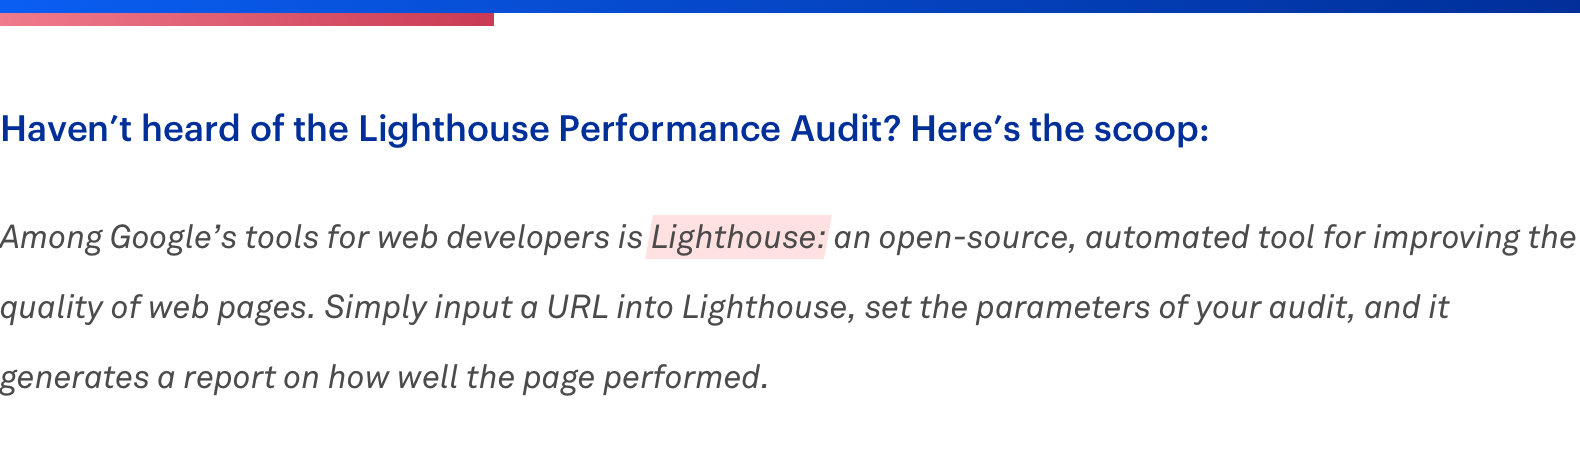 lighthouse performance audit